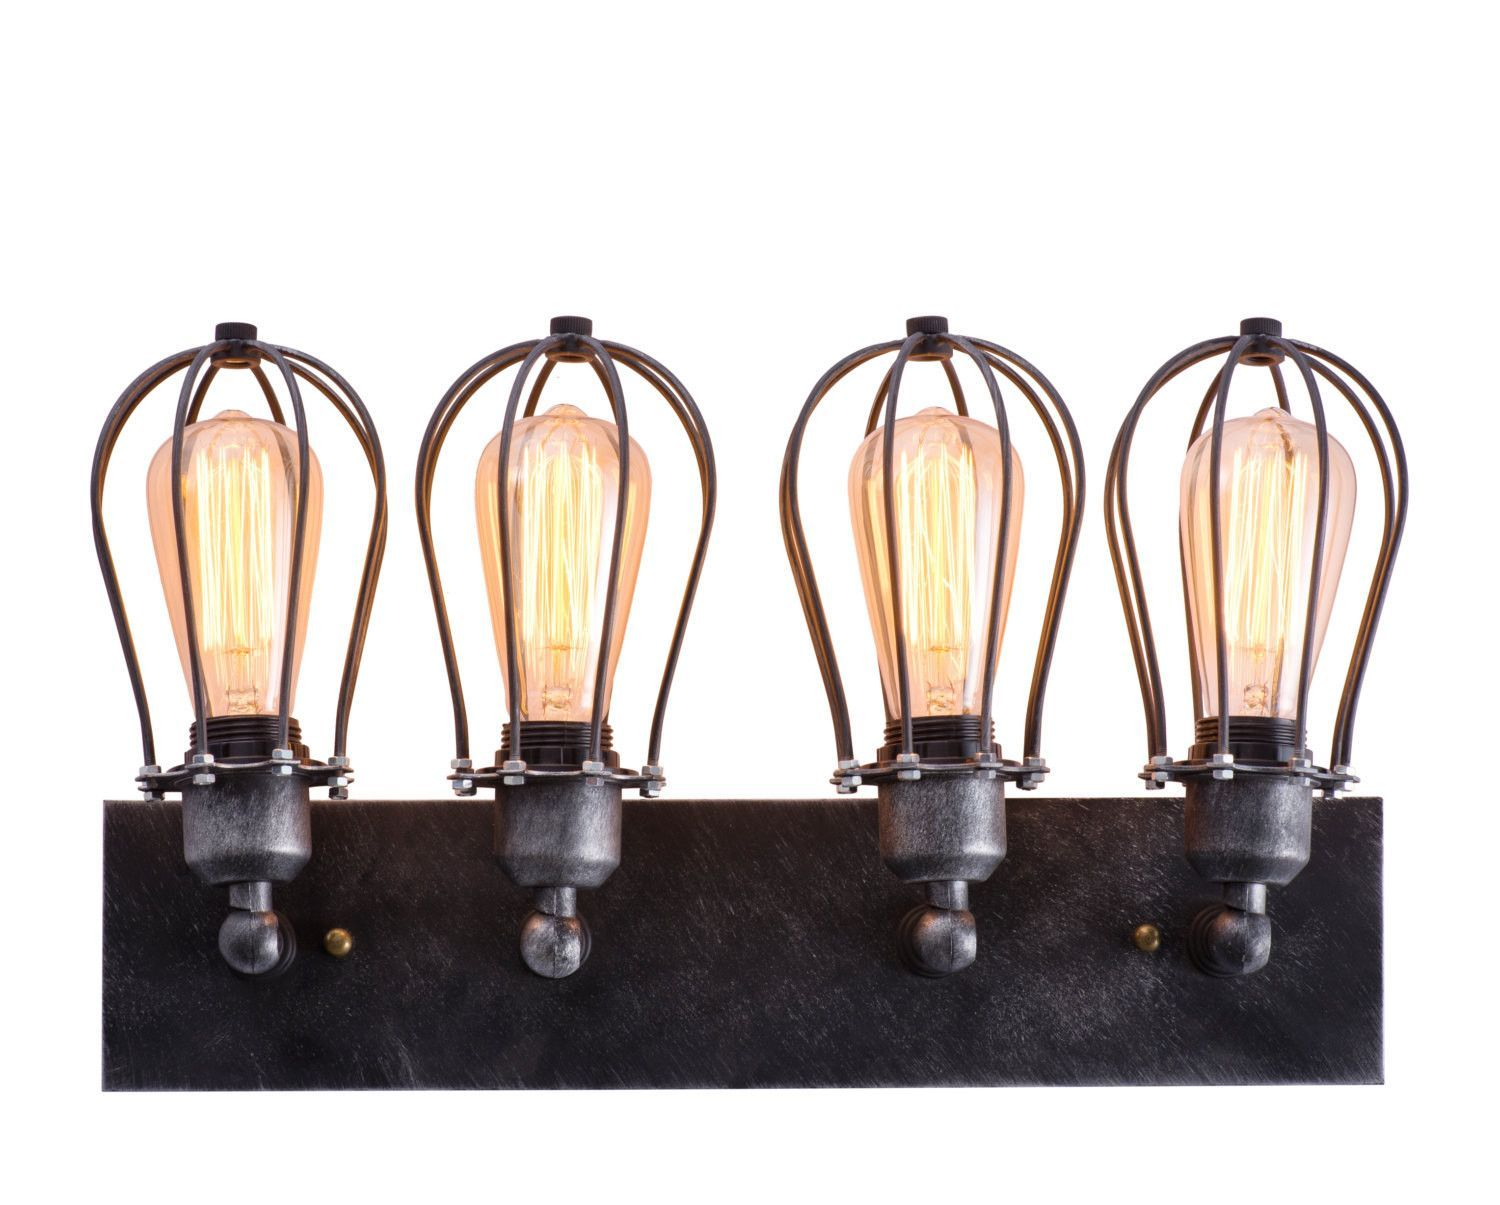 Rustic iron wall lights cast iron wall lighting fixtures ebay industrial cage wall lamp retro iron wall sconces rustic bathroom aloadofball Images